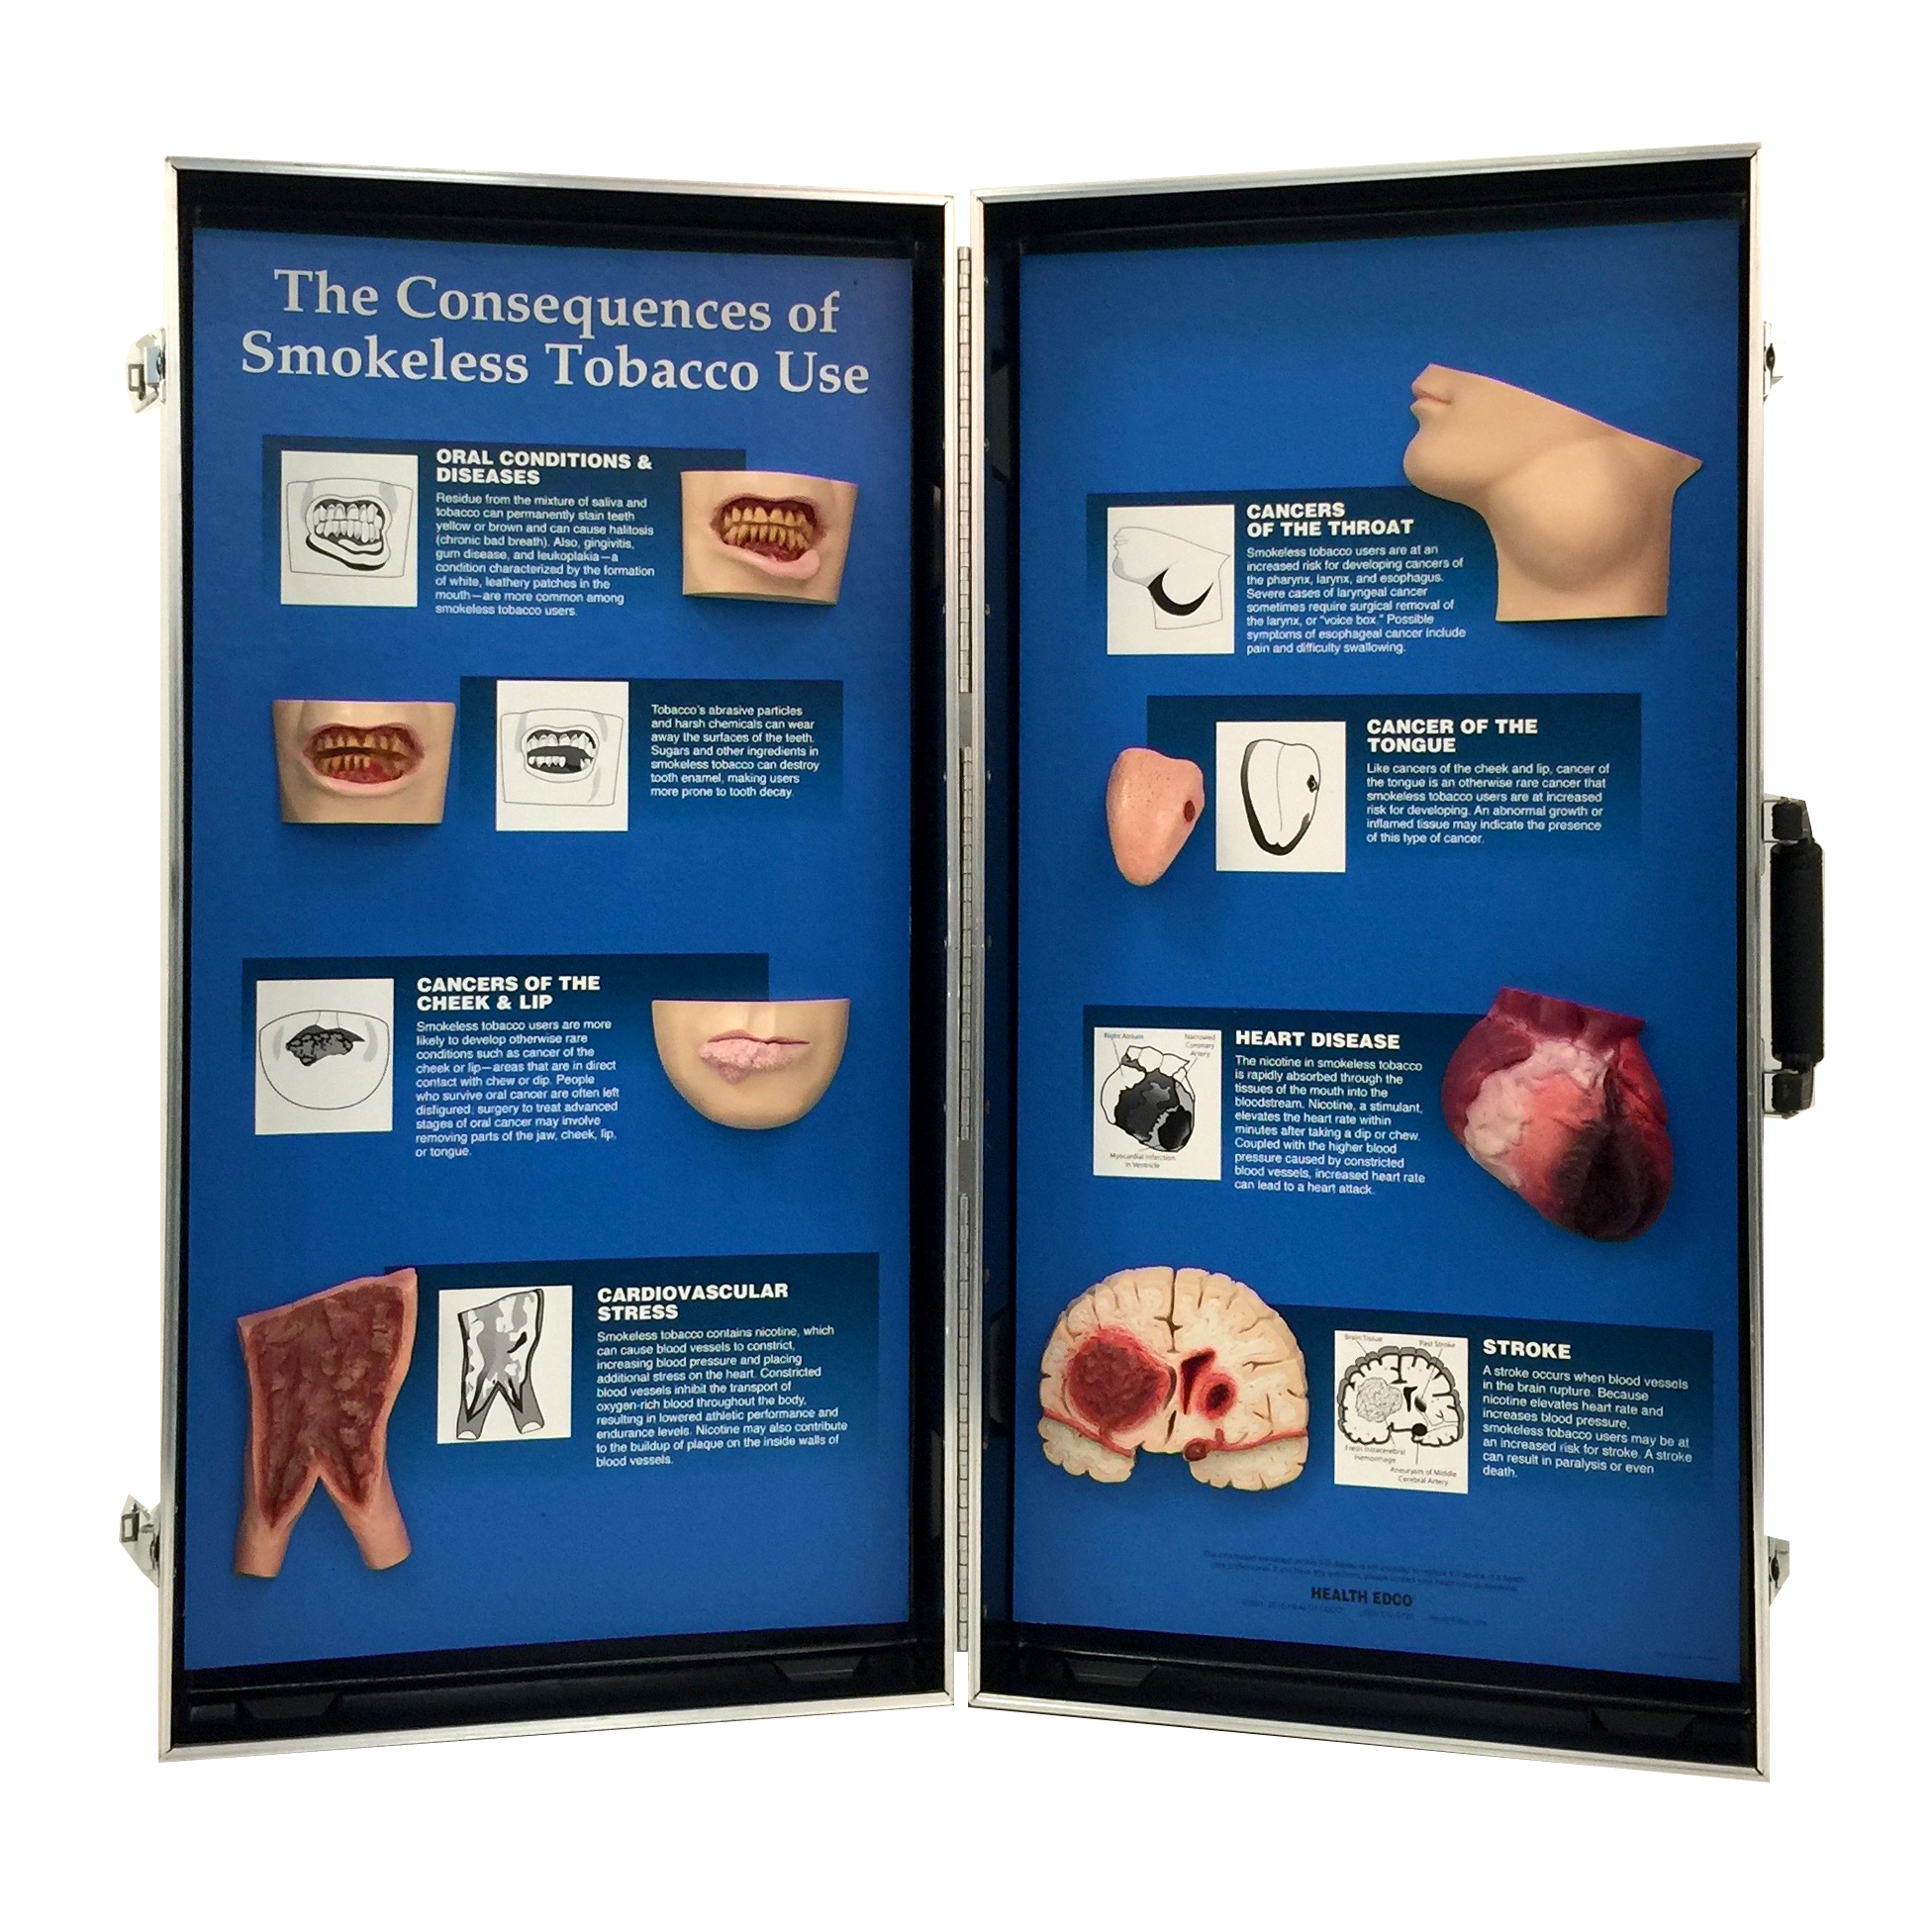 Consequences Of Smokeless Tobacco 3-D Display | Health Edco